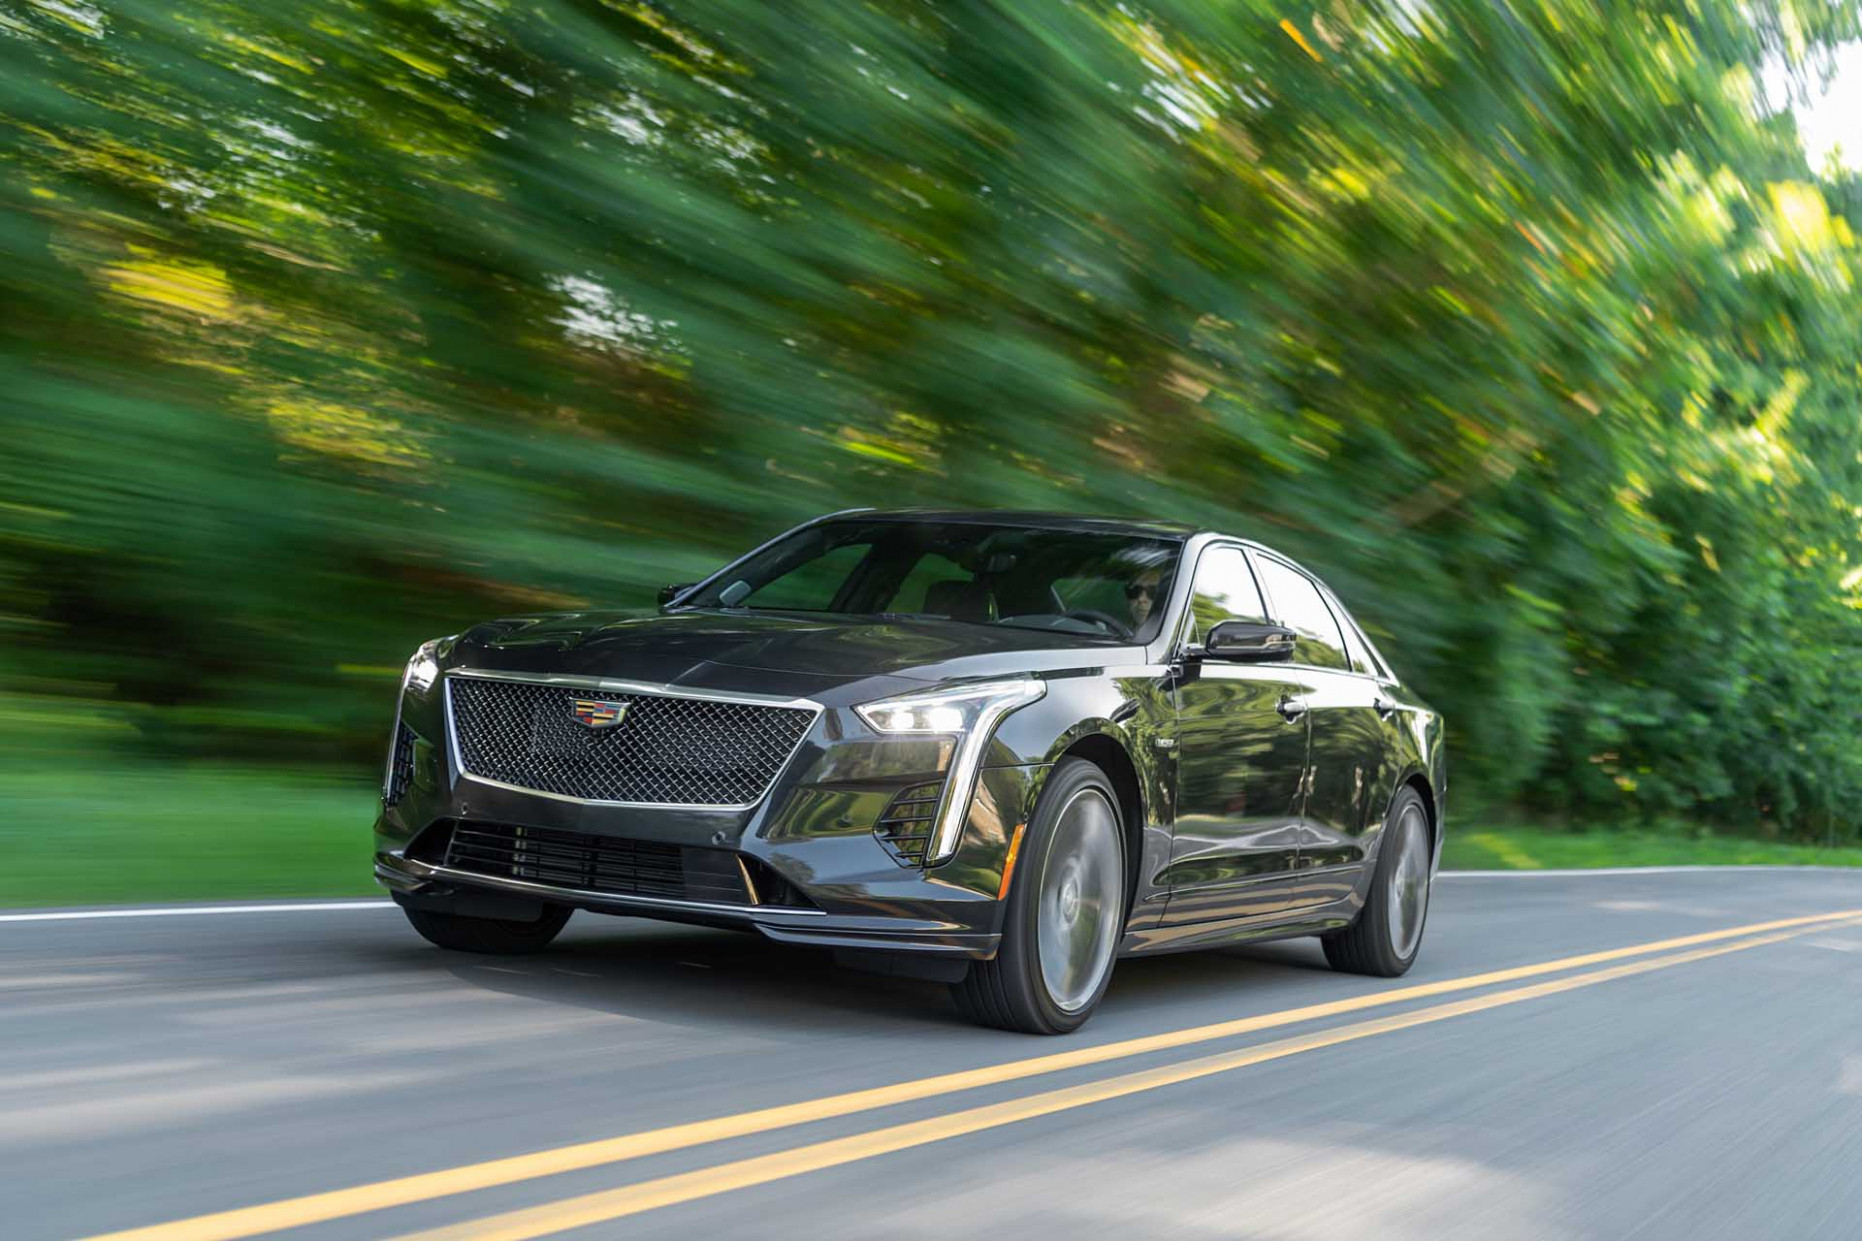 6 Cadillac CT6 Review, Ratings, Specs, Prices, and Photos - The ..